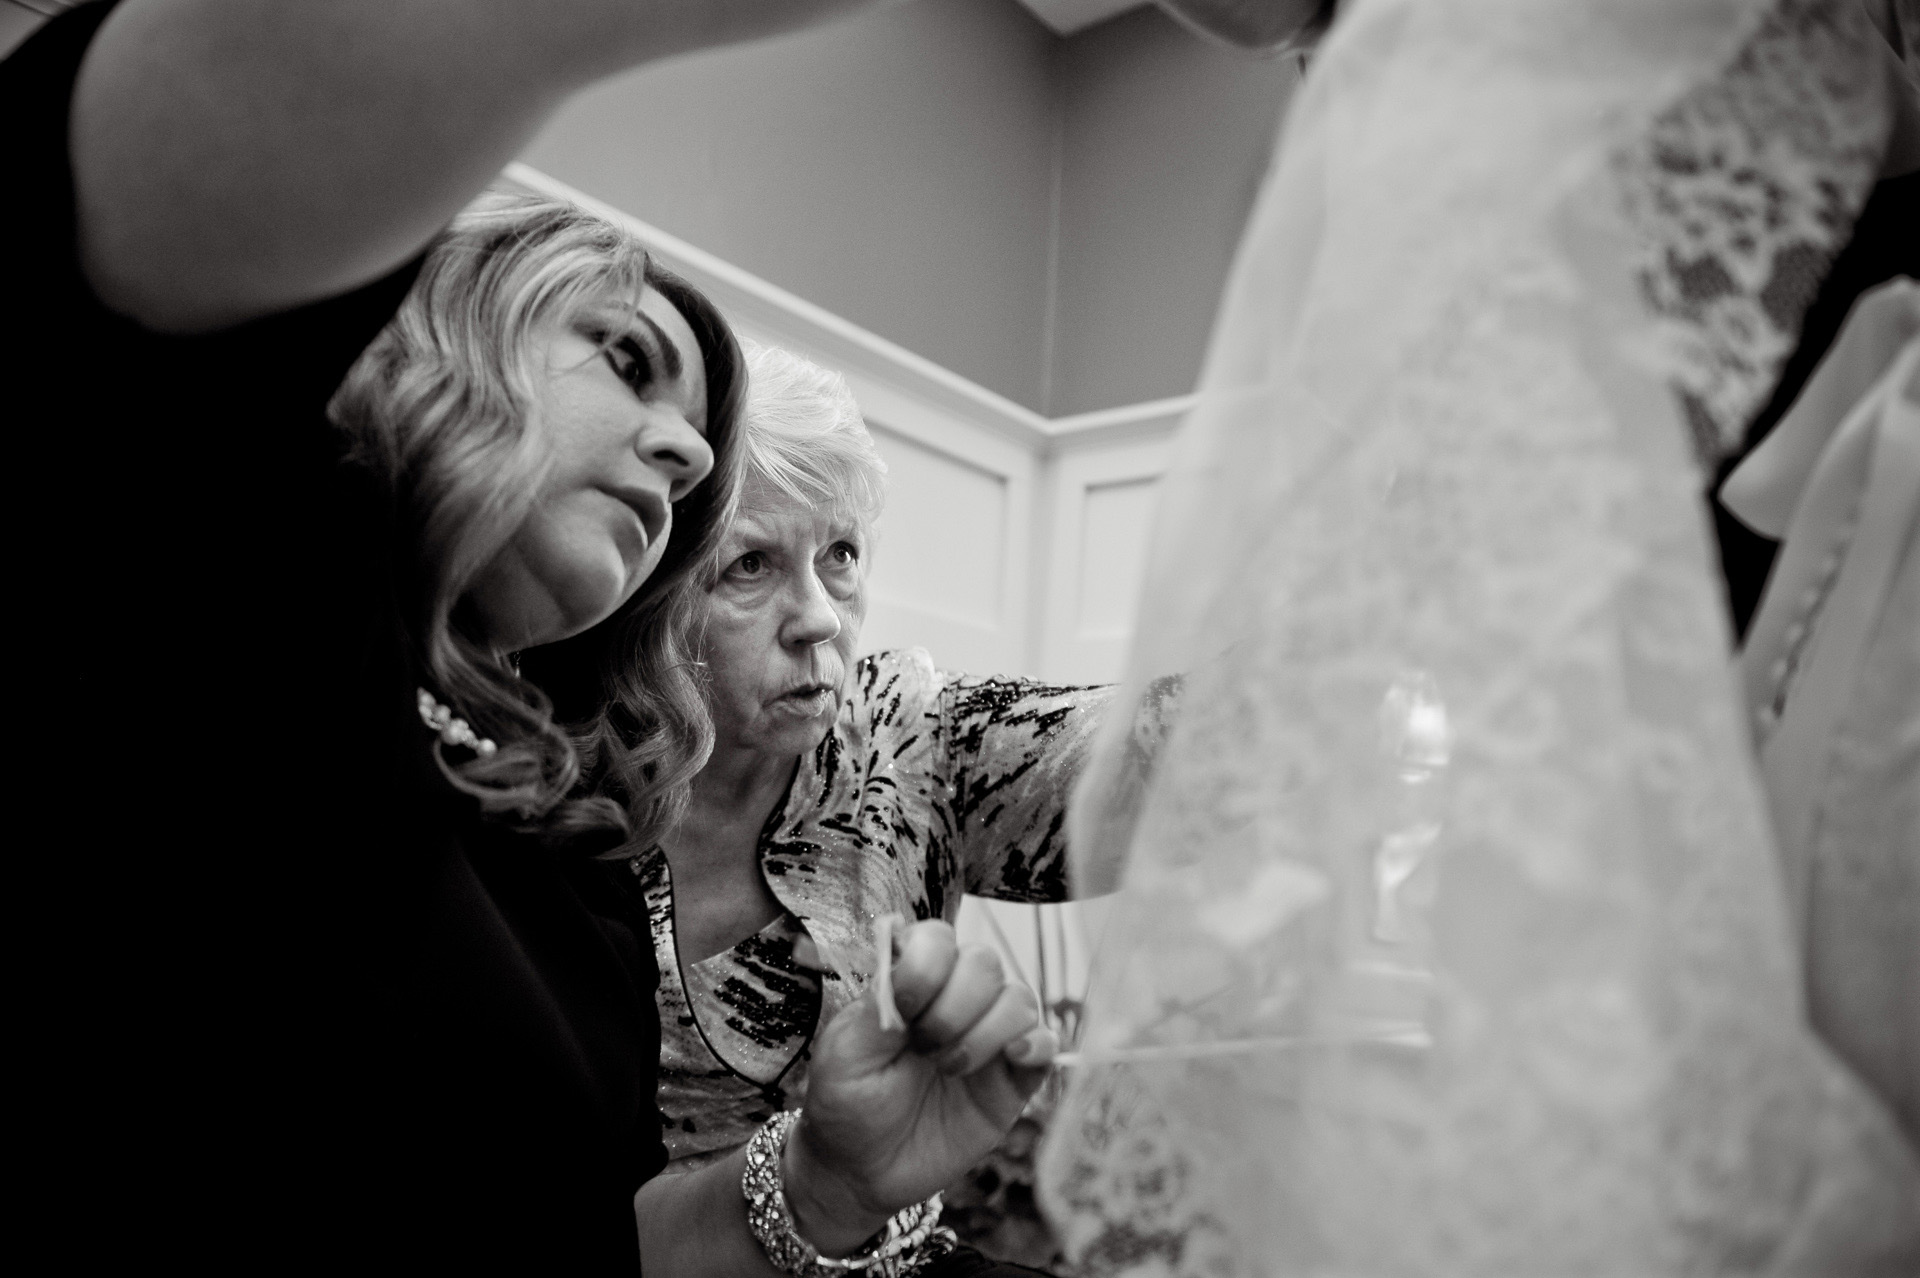 Michigan same sex wedding wedding photographer's photo of the mother of the bride and a friend trying to figure out a bustle after a Michigan same sex wedding in Livonia, Michigan.